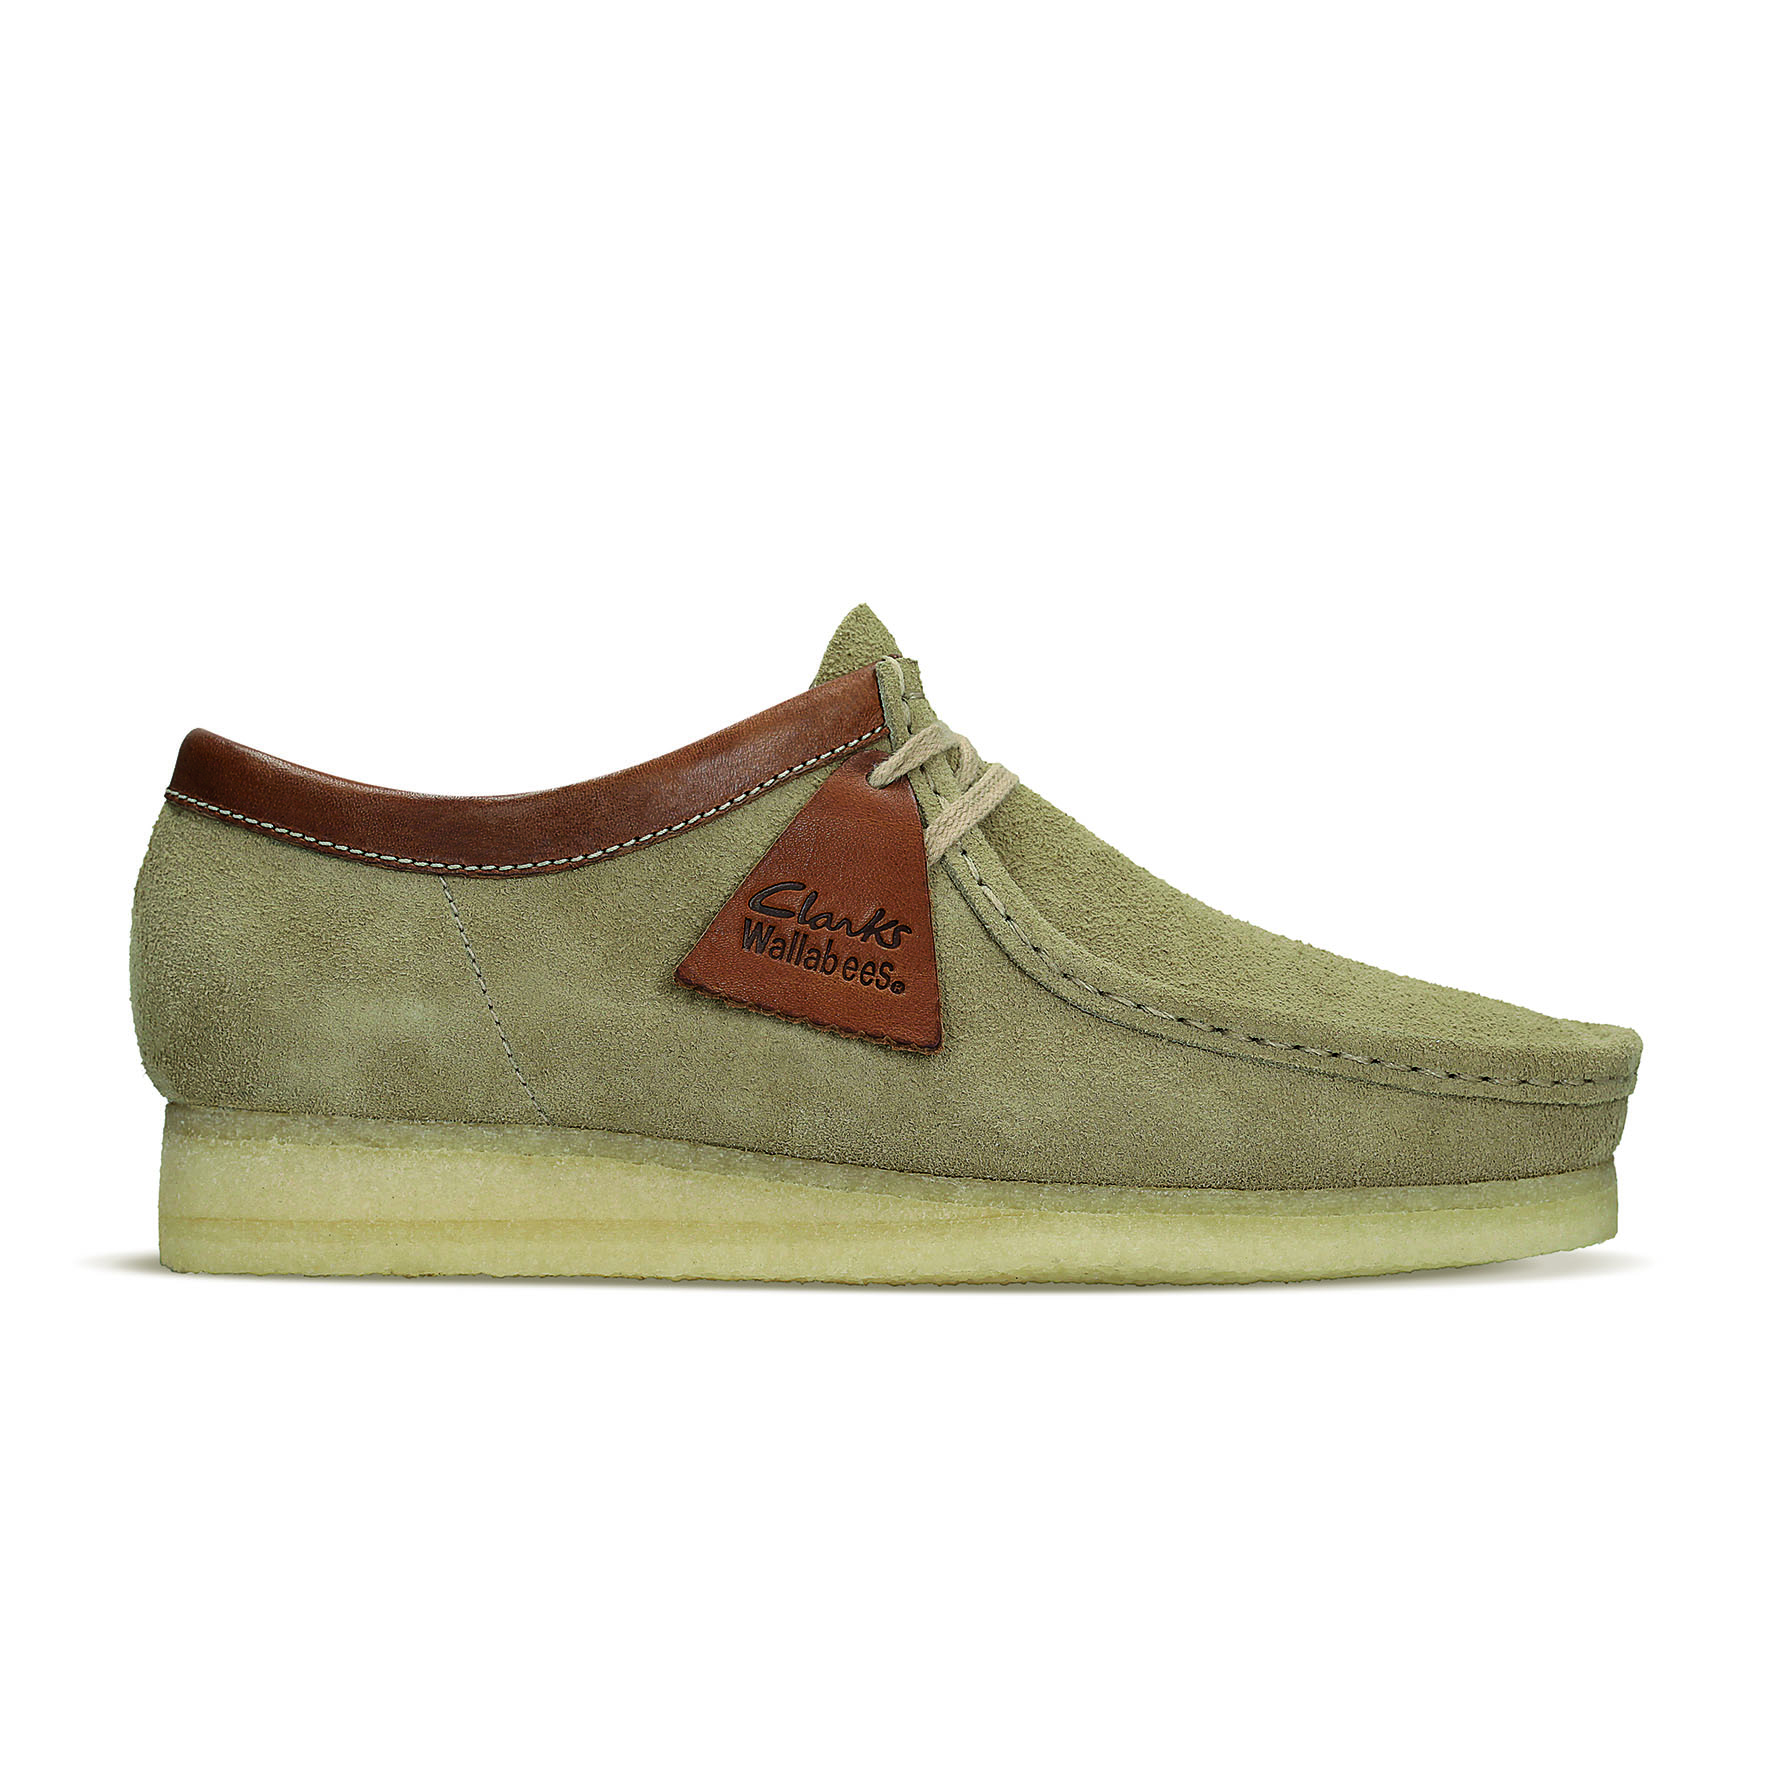 Wallabee Sand Suede